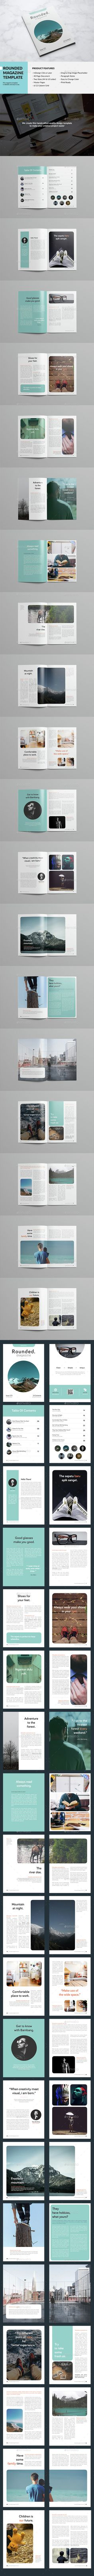 Rounded Magazine Template InDesign INDD. Download here: http://graphicriver.net/item/rounded-magazine/15123932?ref=ksioks